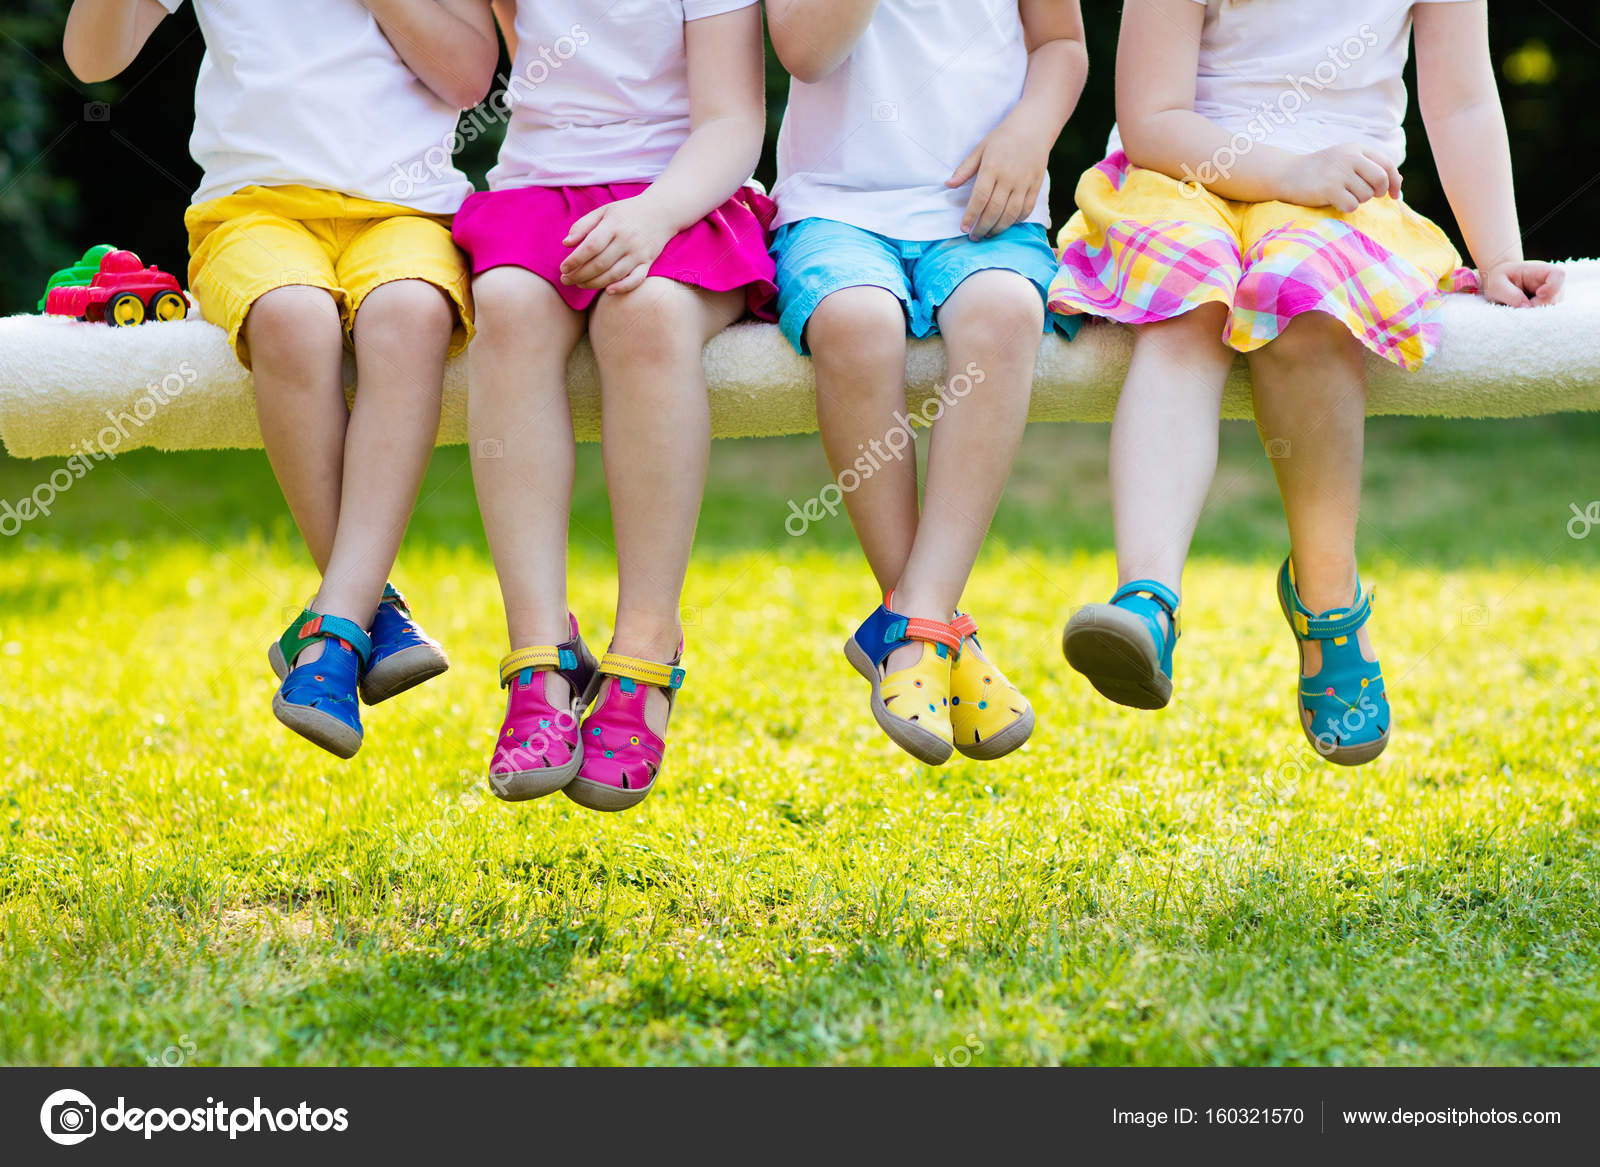 Kids With Colorful Shoes Children Footwear Stock Photo